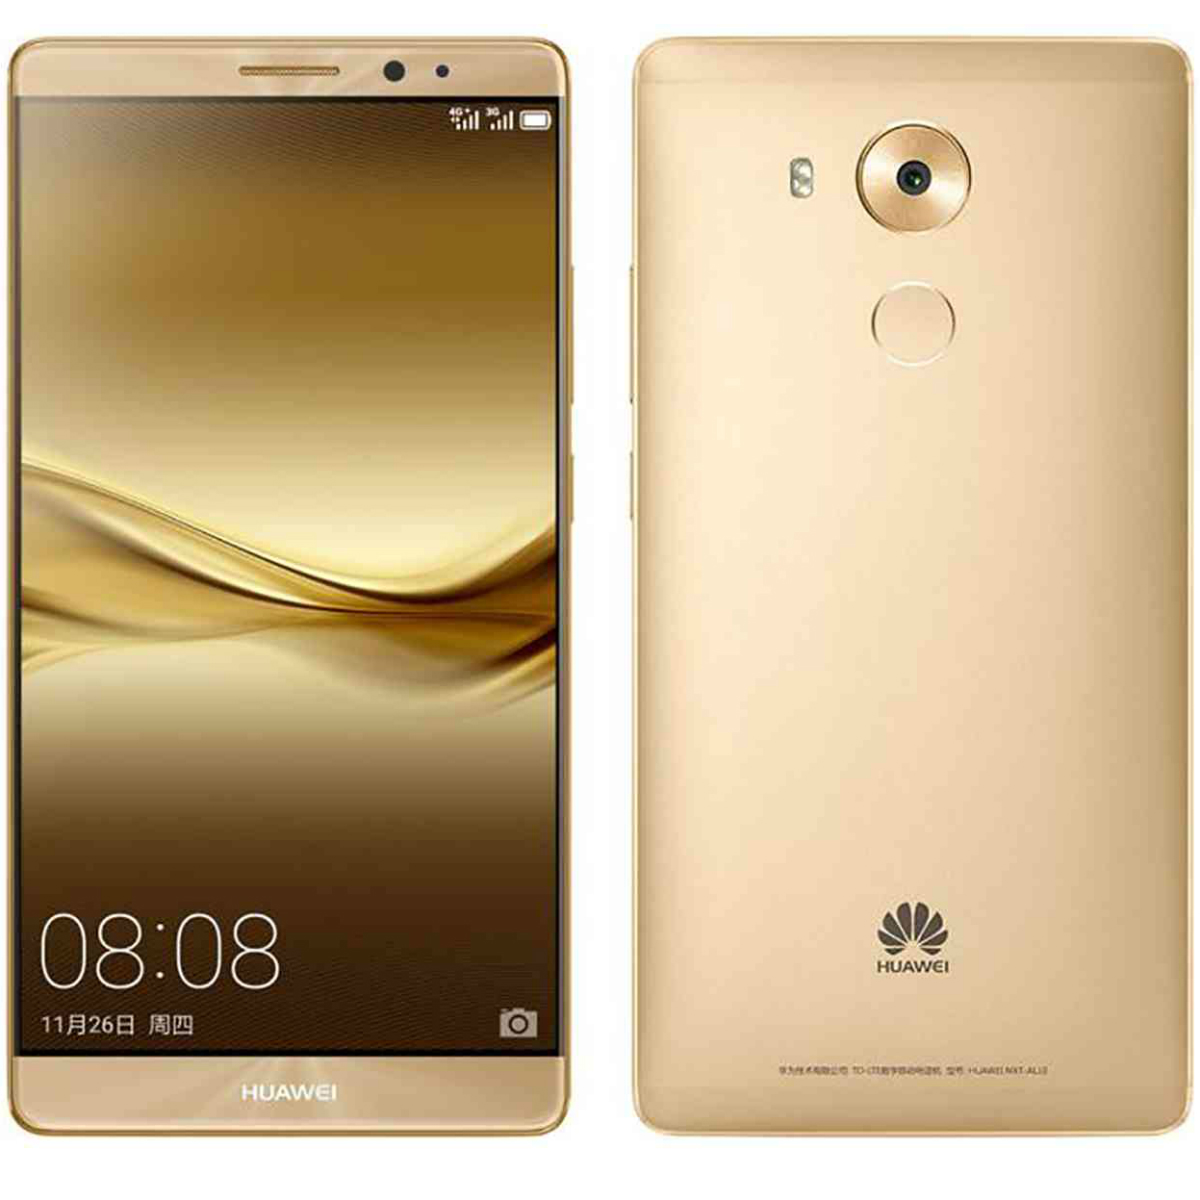 Huawei Ascend Mate 8 Price in Nigeria, Review, Features, Specs and  Comparison